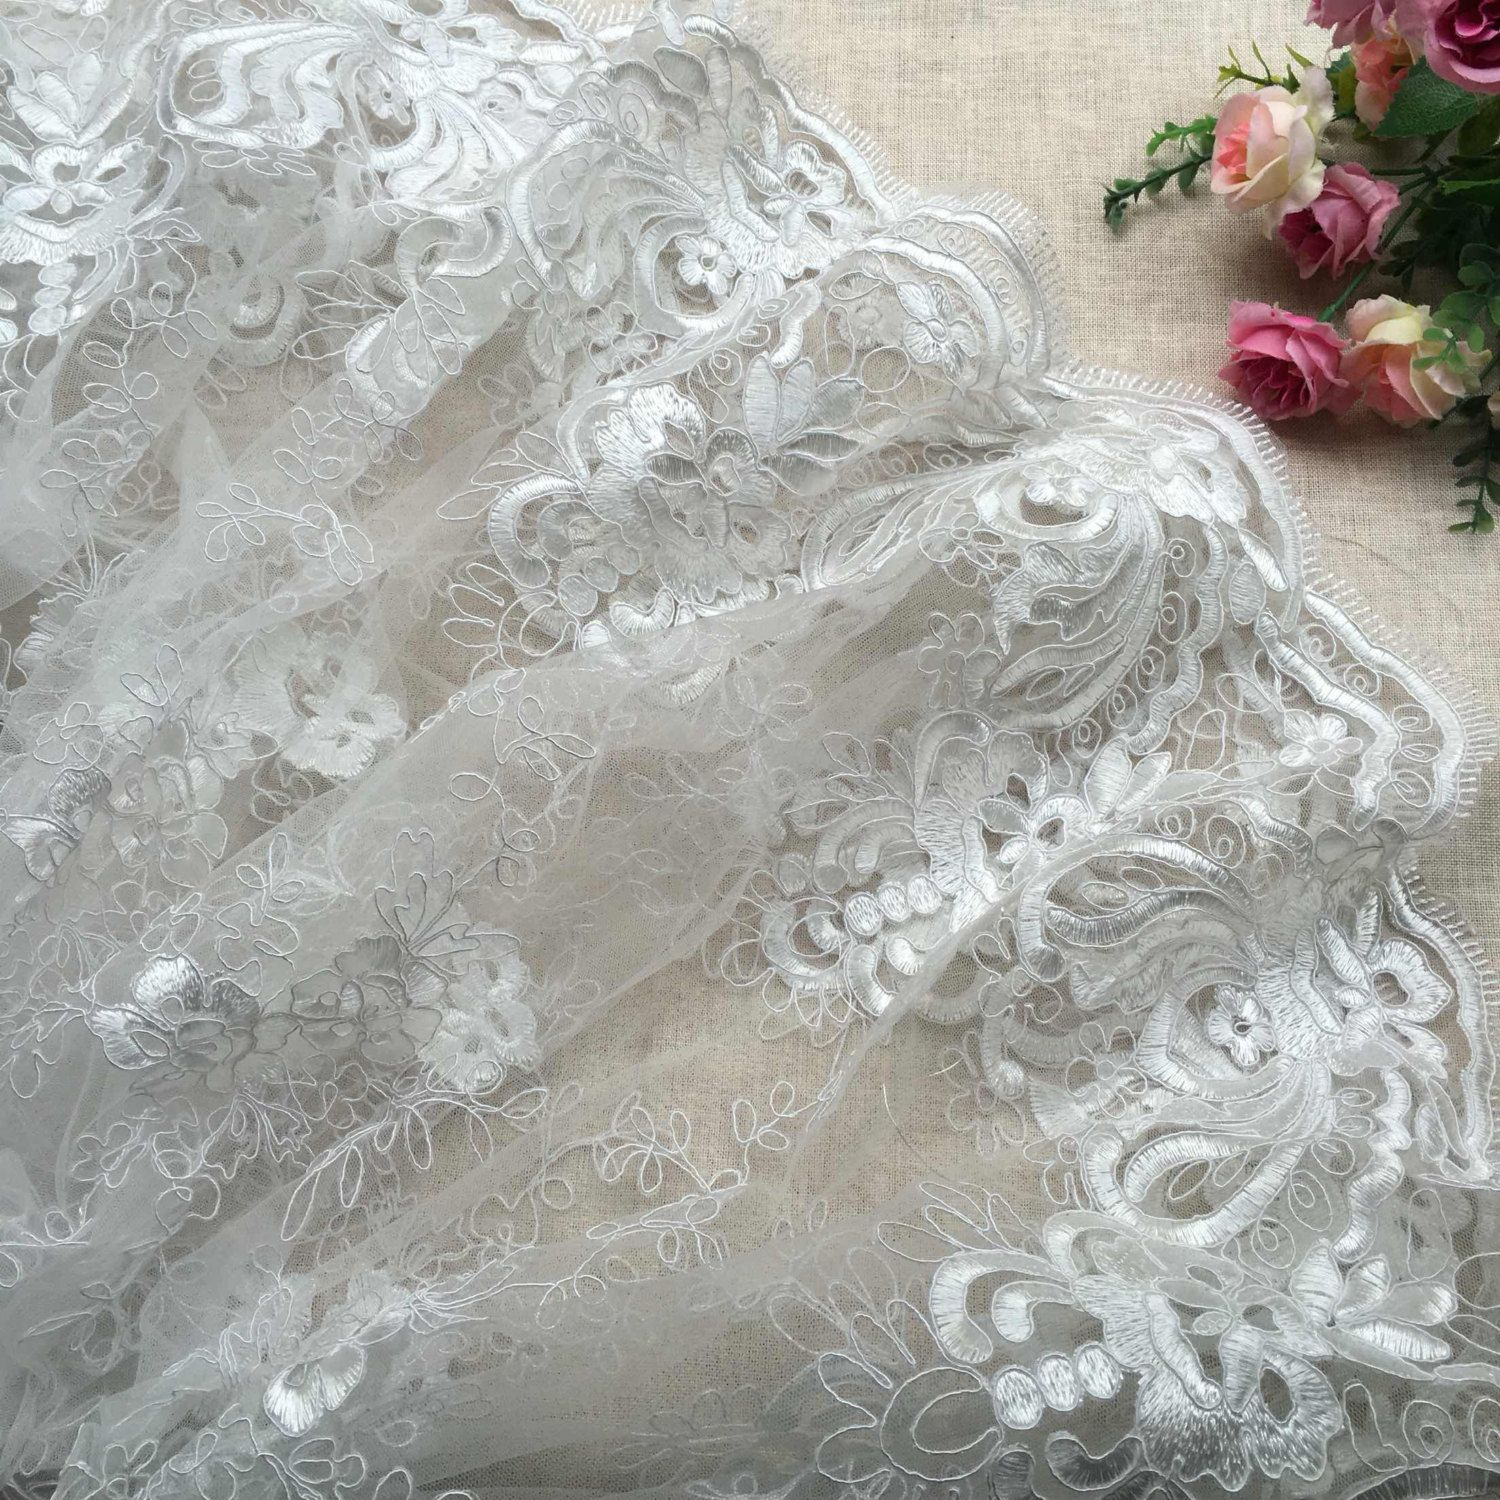 Fashion 3D lace, Ivory lace fabric,embroidered lace,guipure lace ...